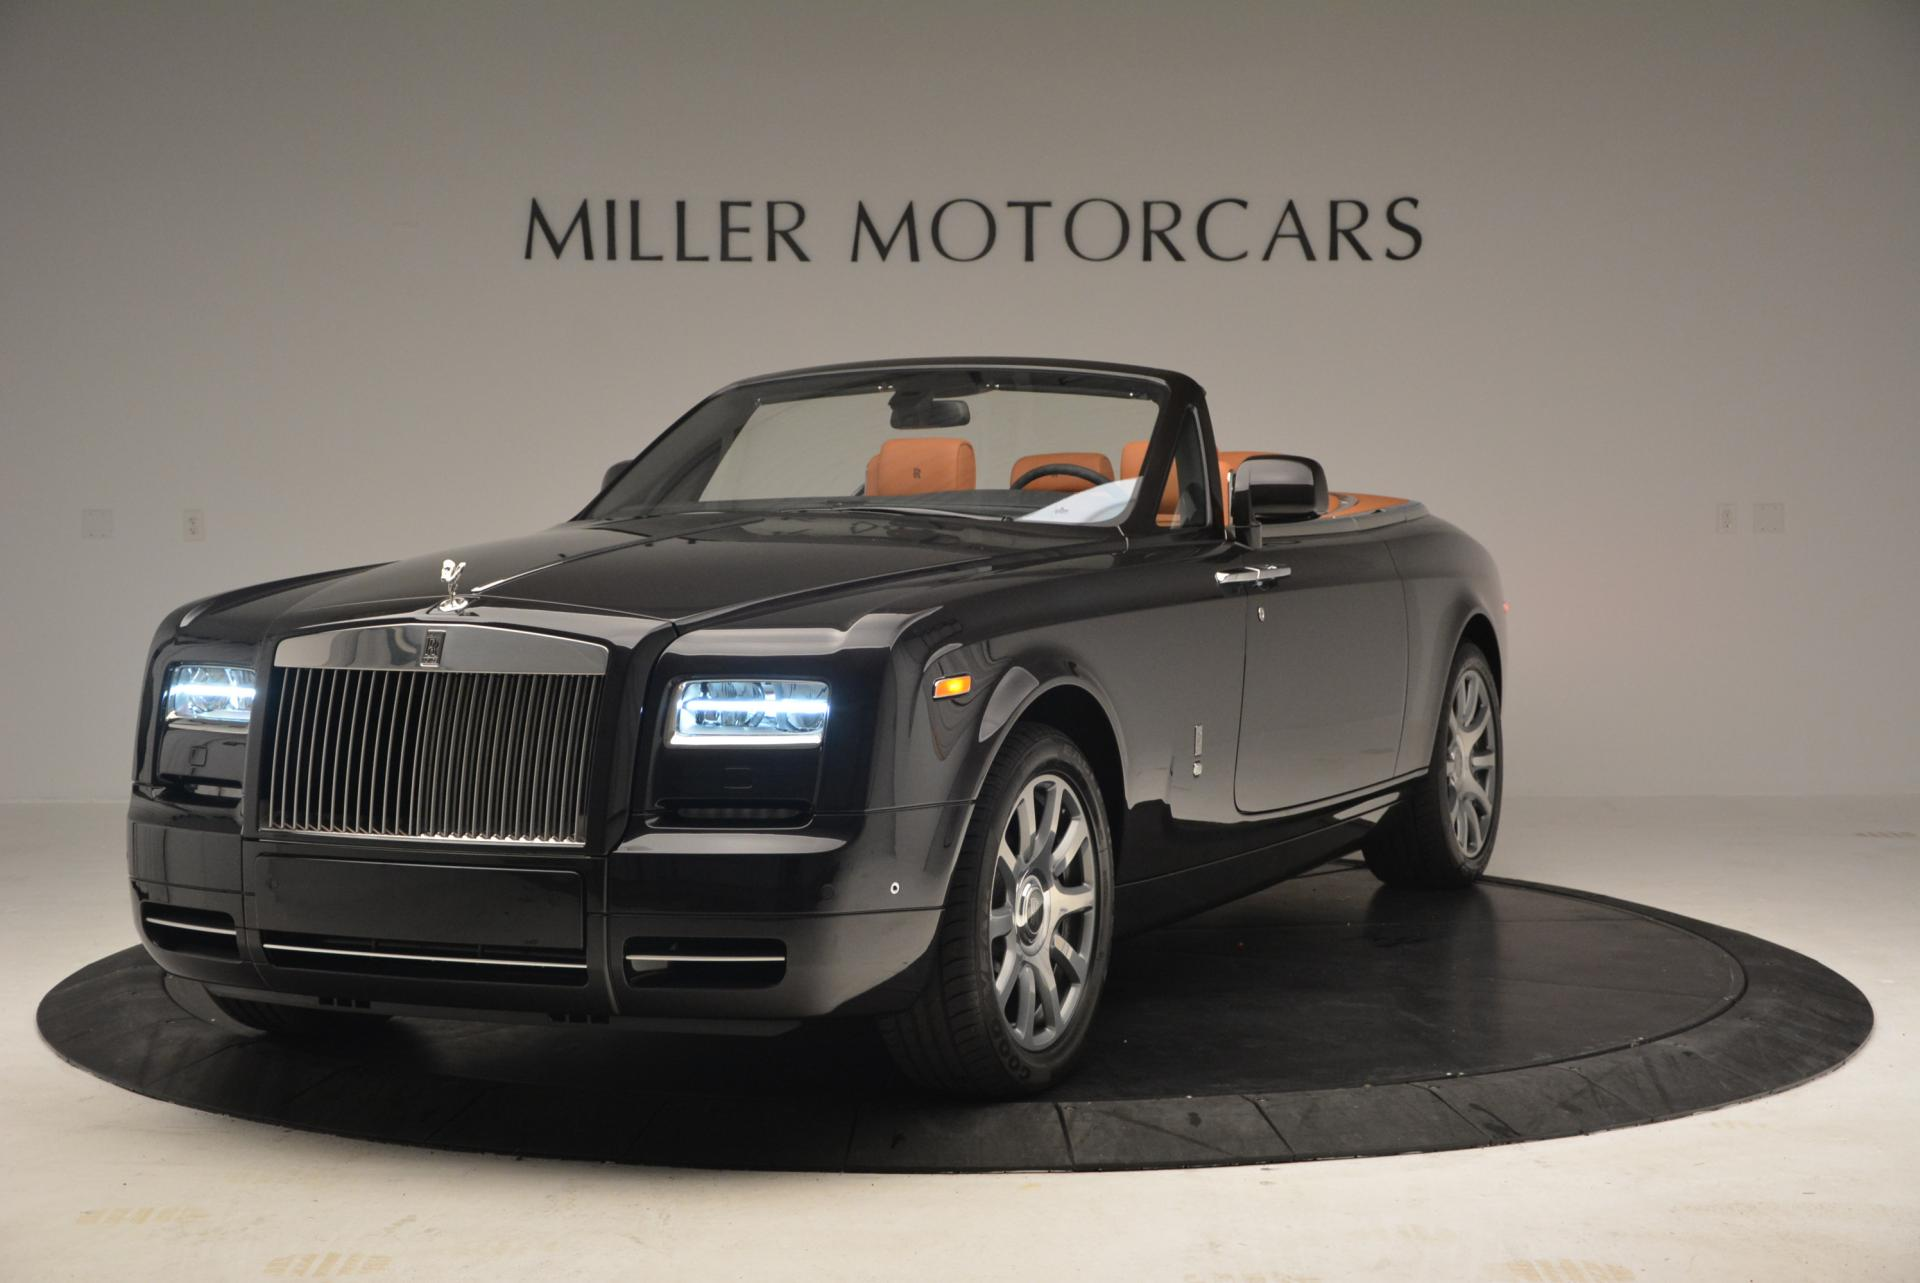 New 2016 Rolls-Royce Phantom Drophead Coupe Bespoke For Sale In Greenwich, CT 208_main